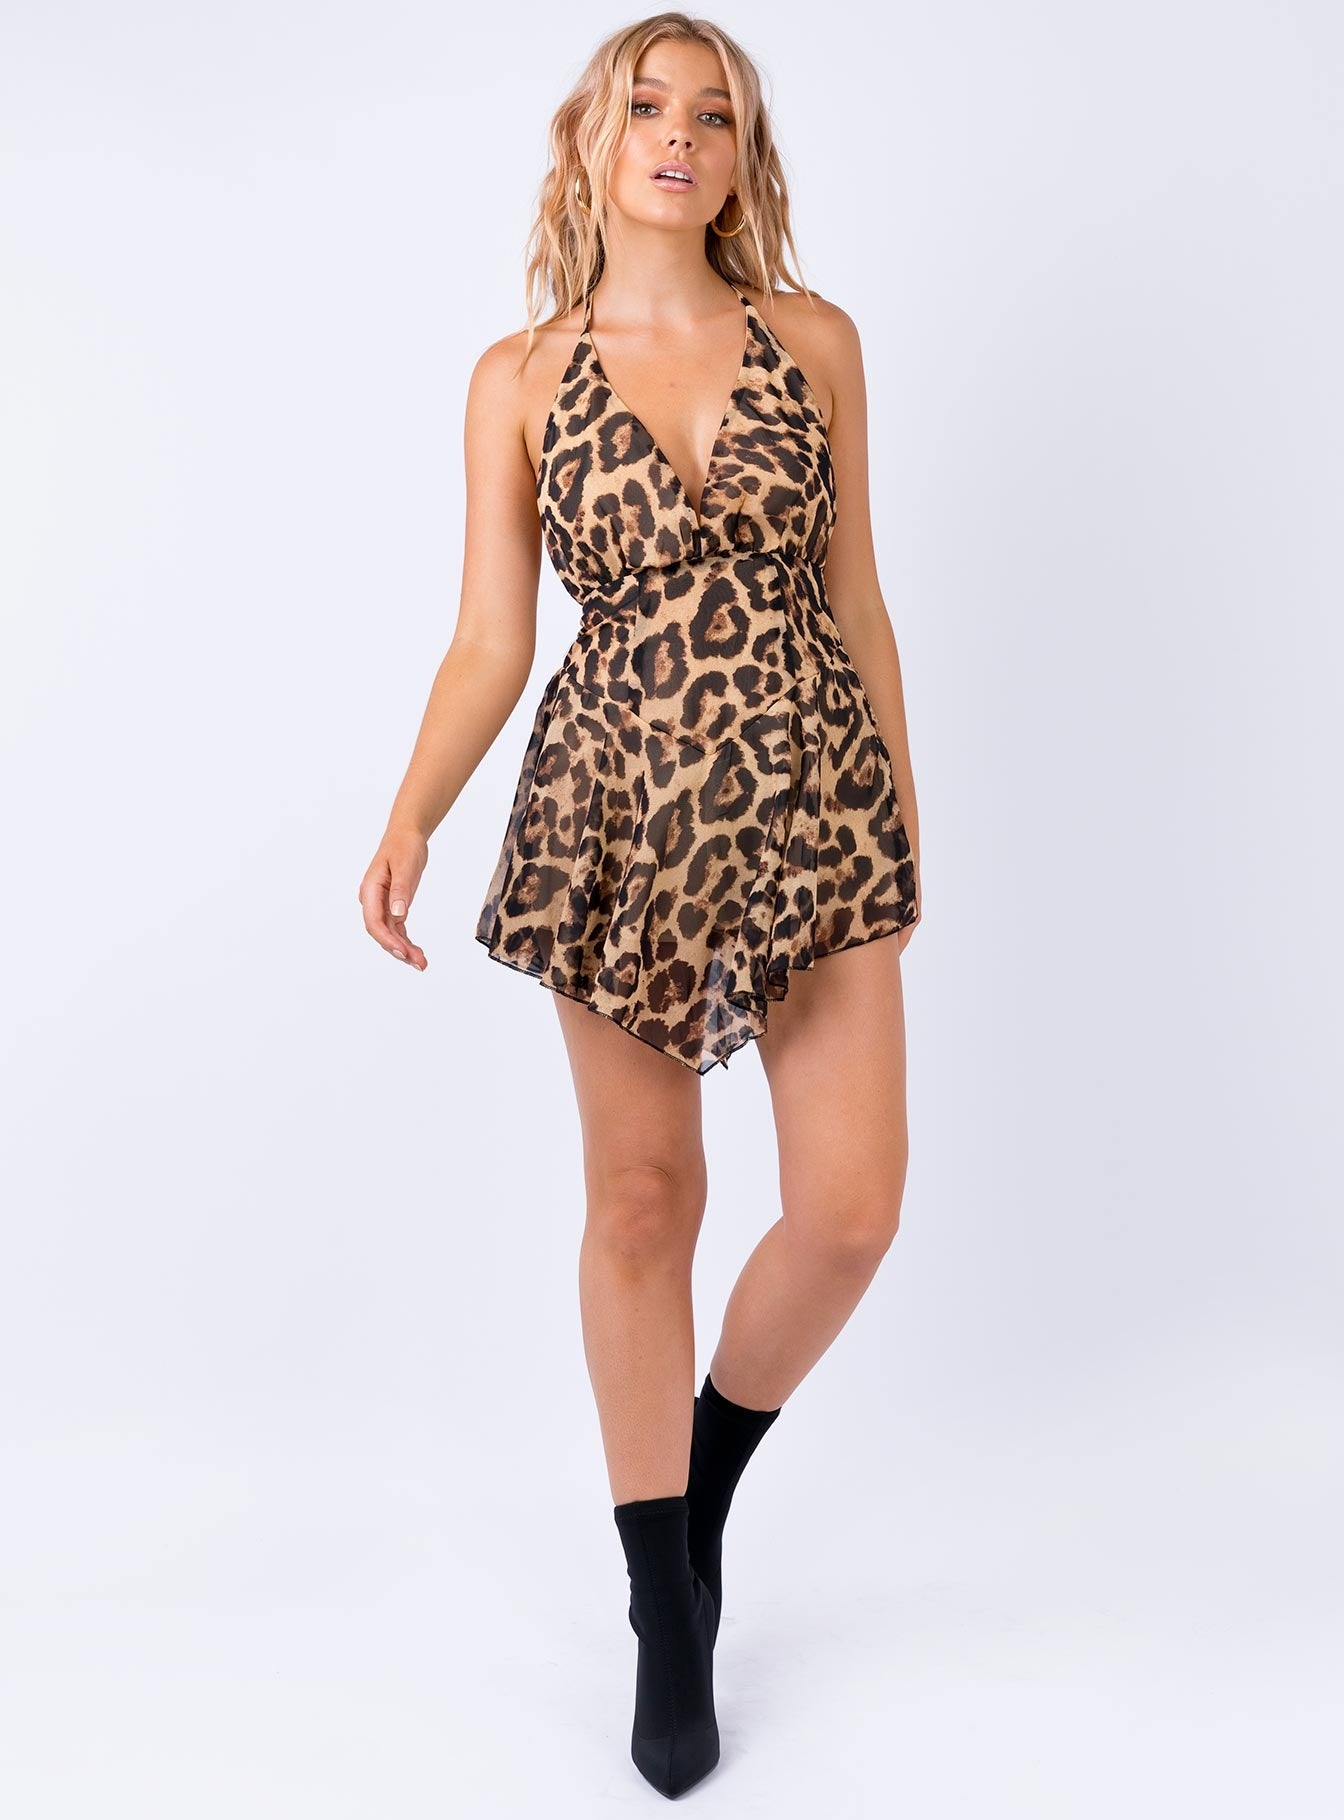 Sindy Playsuit Leopard